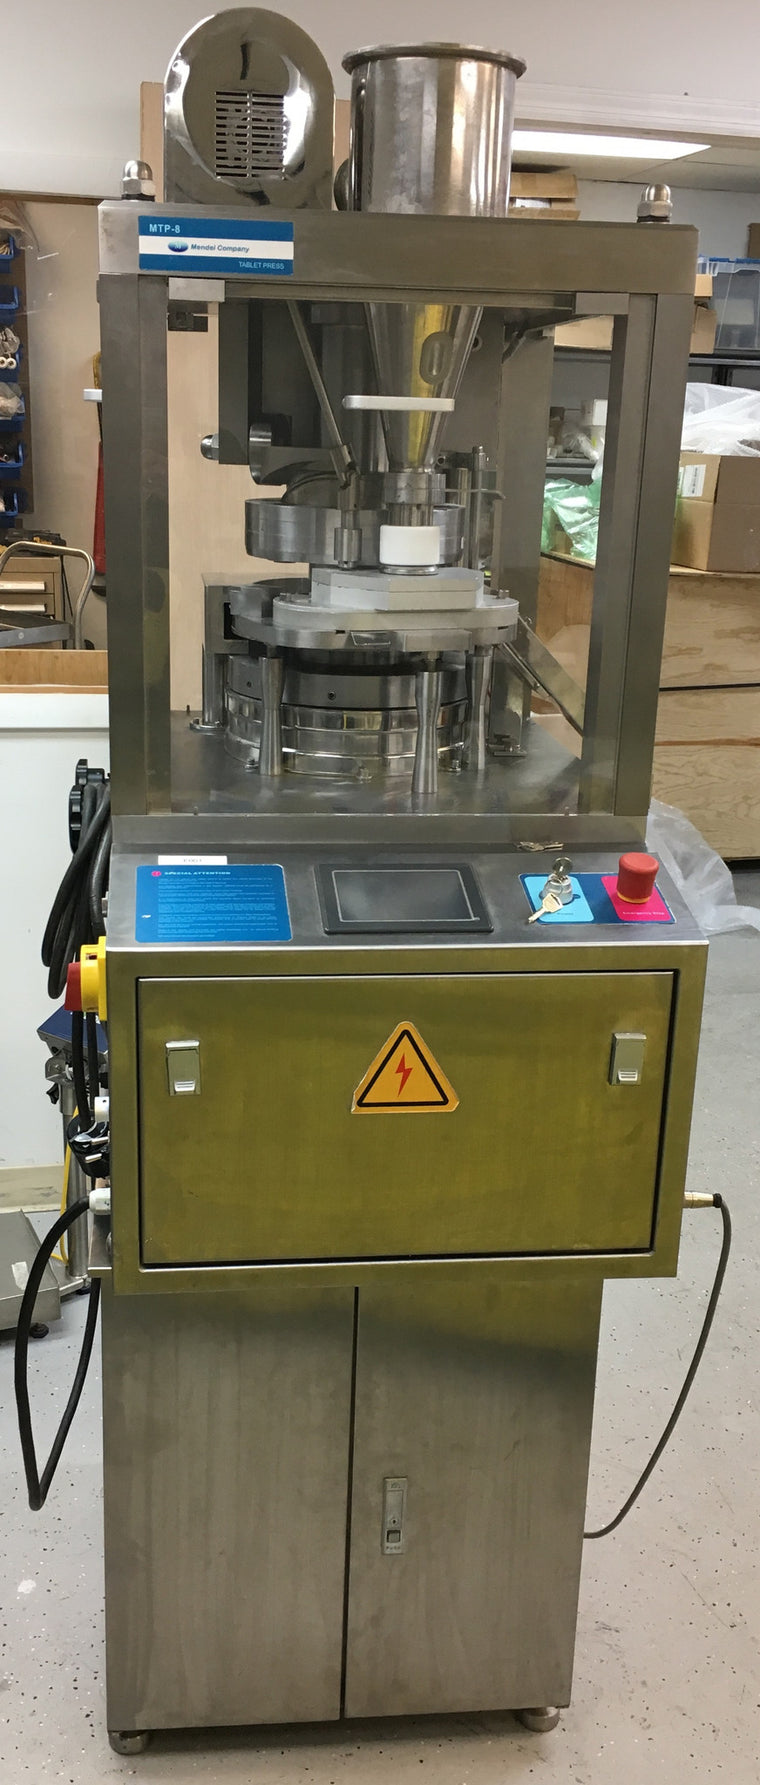 MTP-8 Reconditioned/Used R&D Instrumented (MCC) Tablet Press